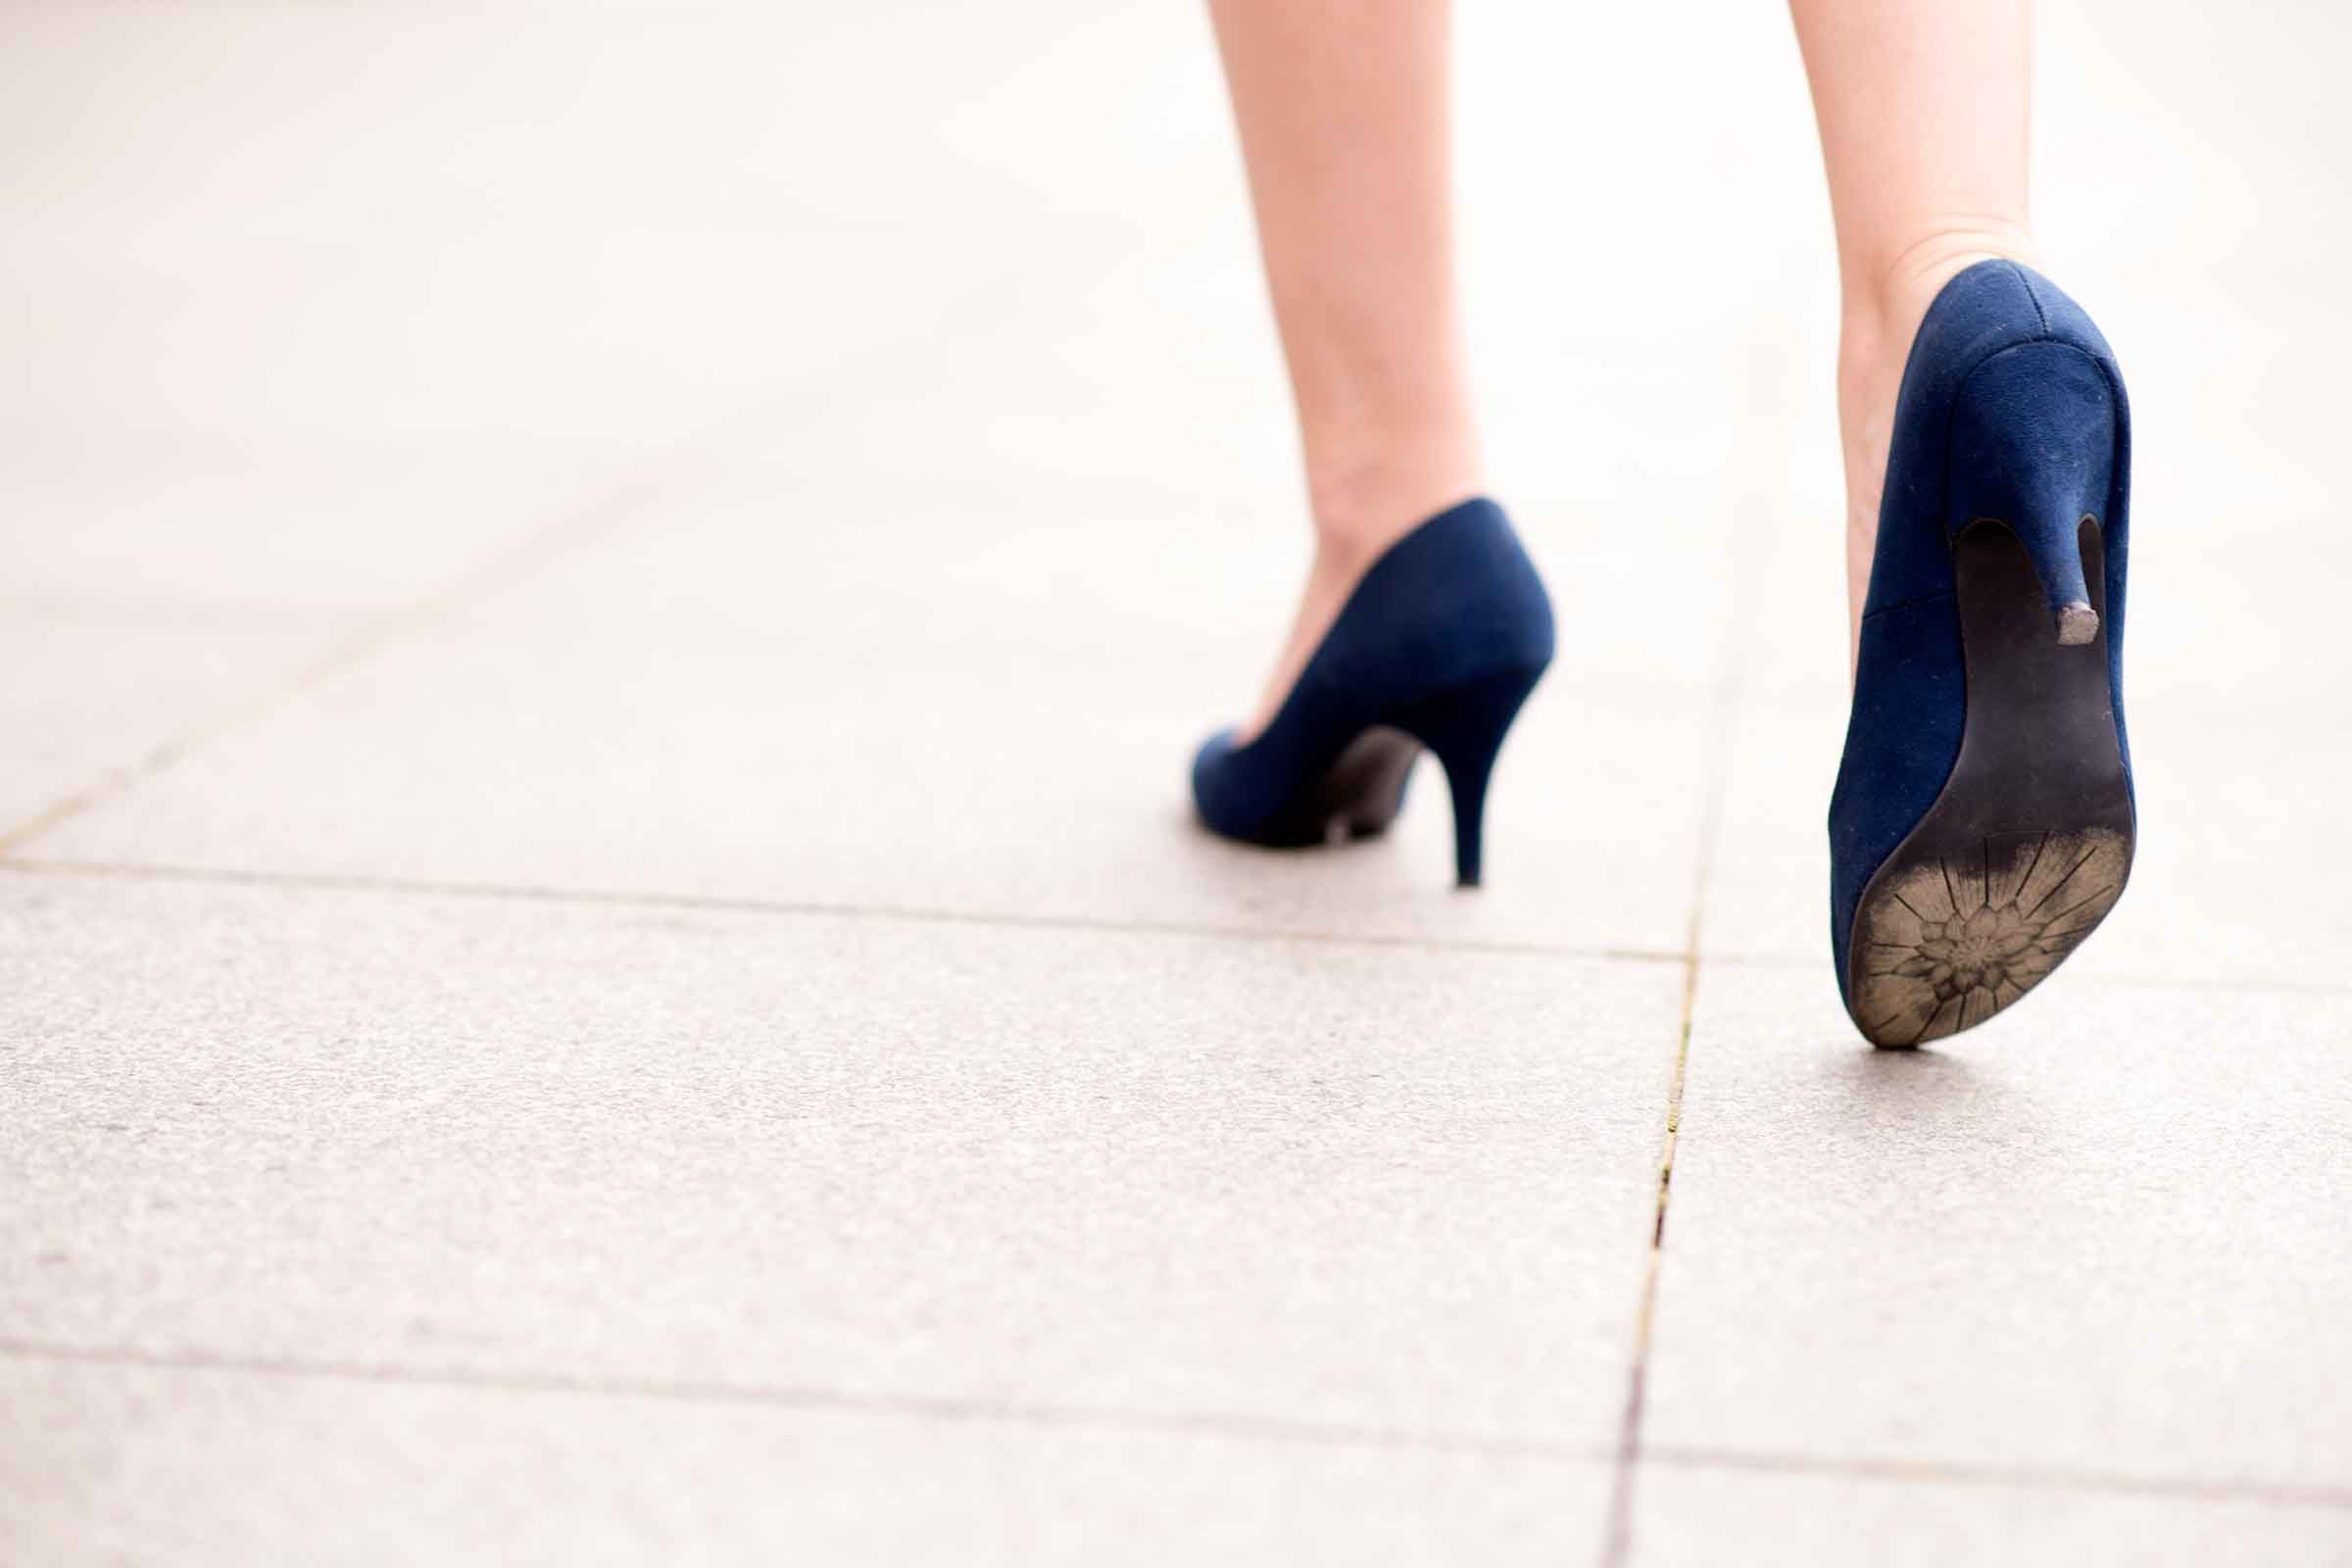 Heels decrease your ankle strength over time